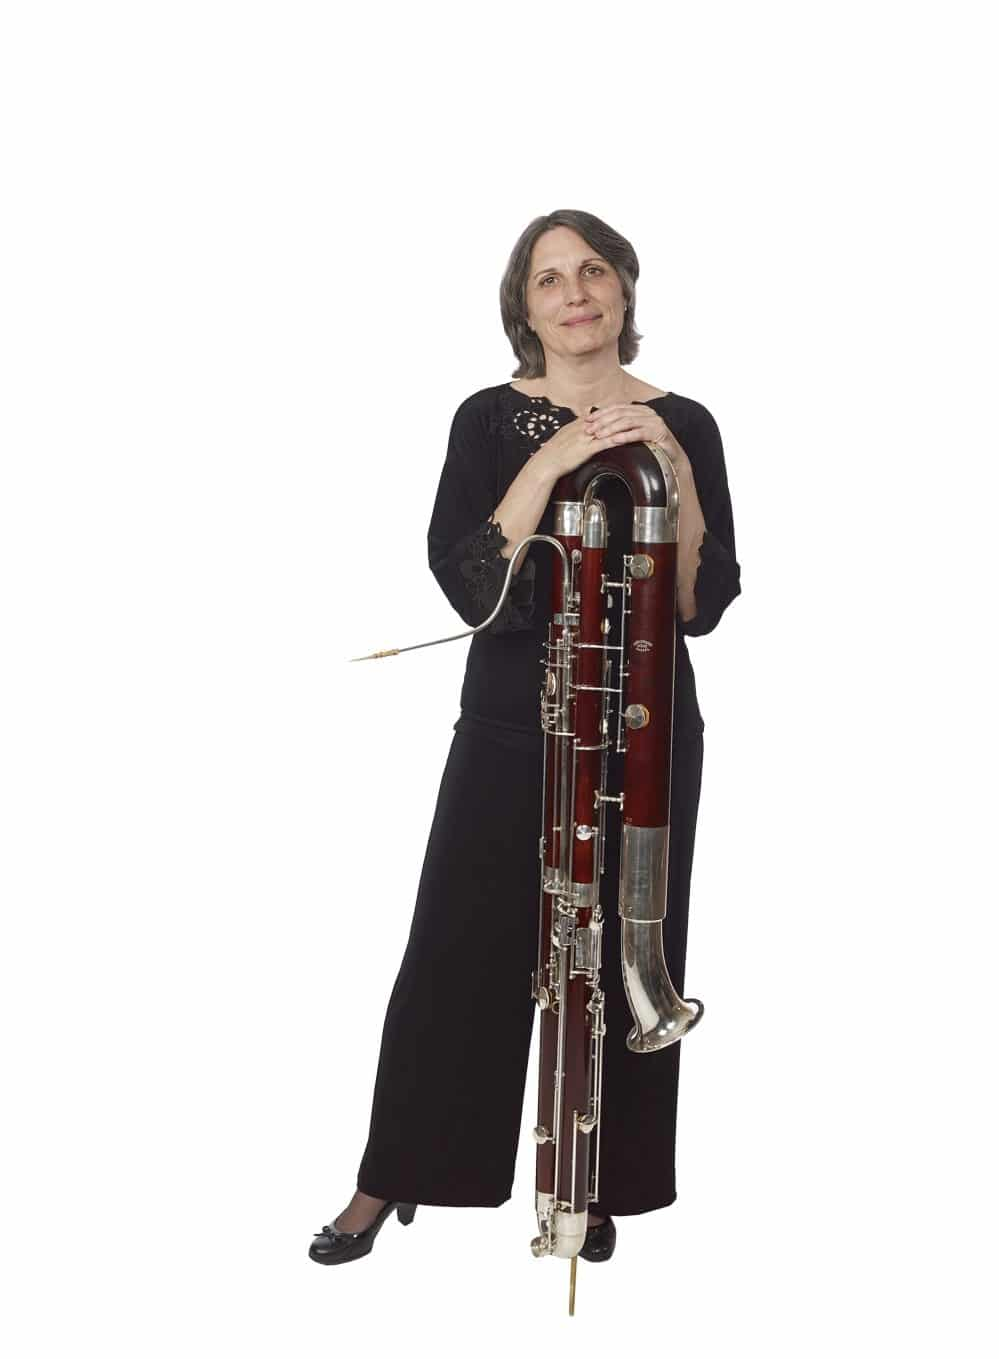 Someone just stole my 25-lb contrabassoon